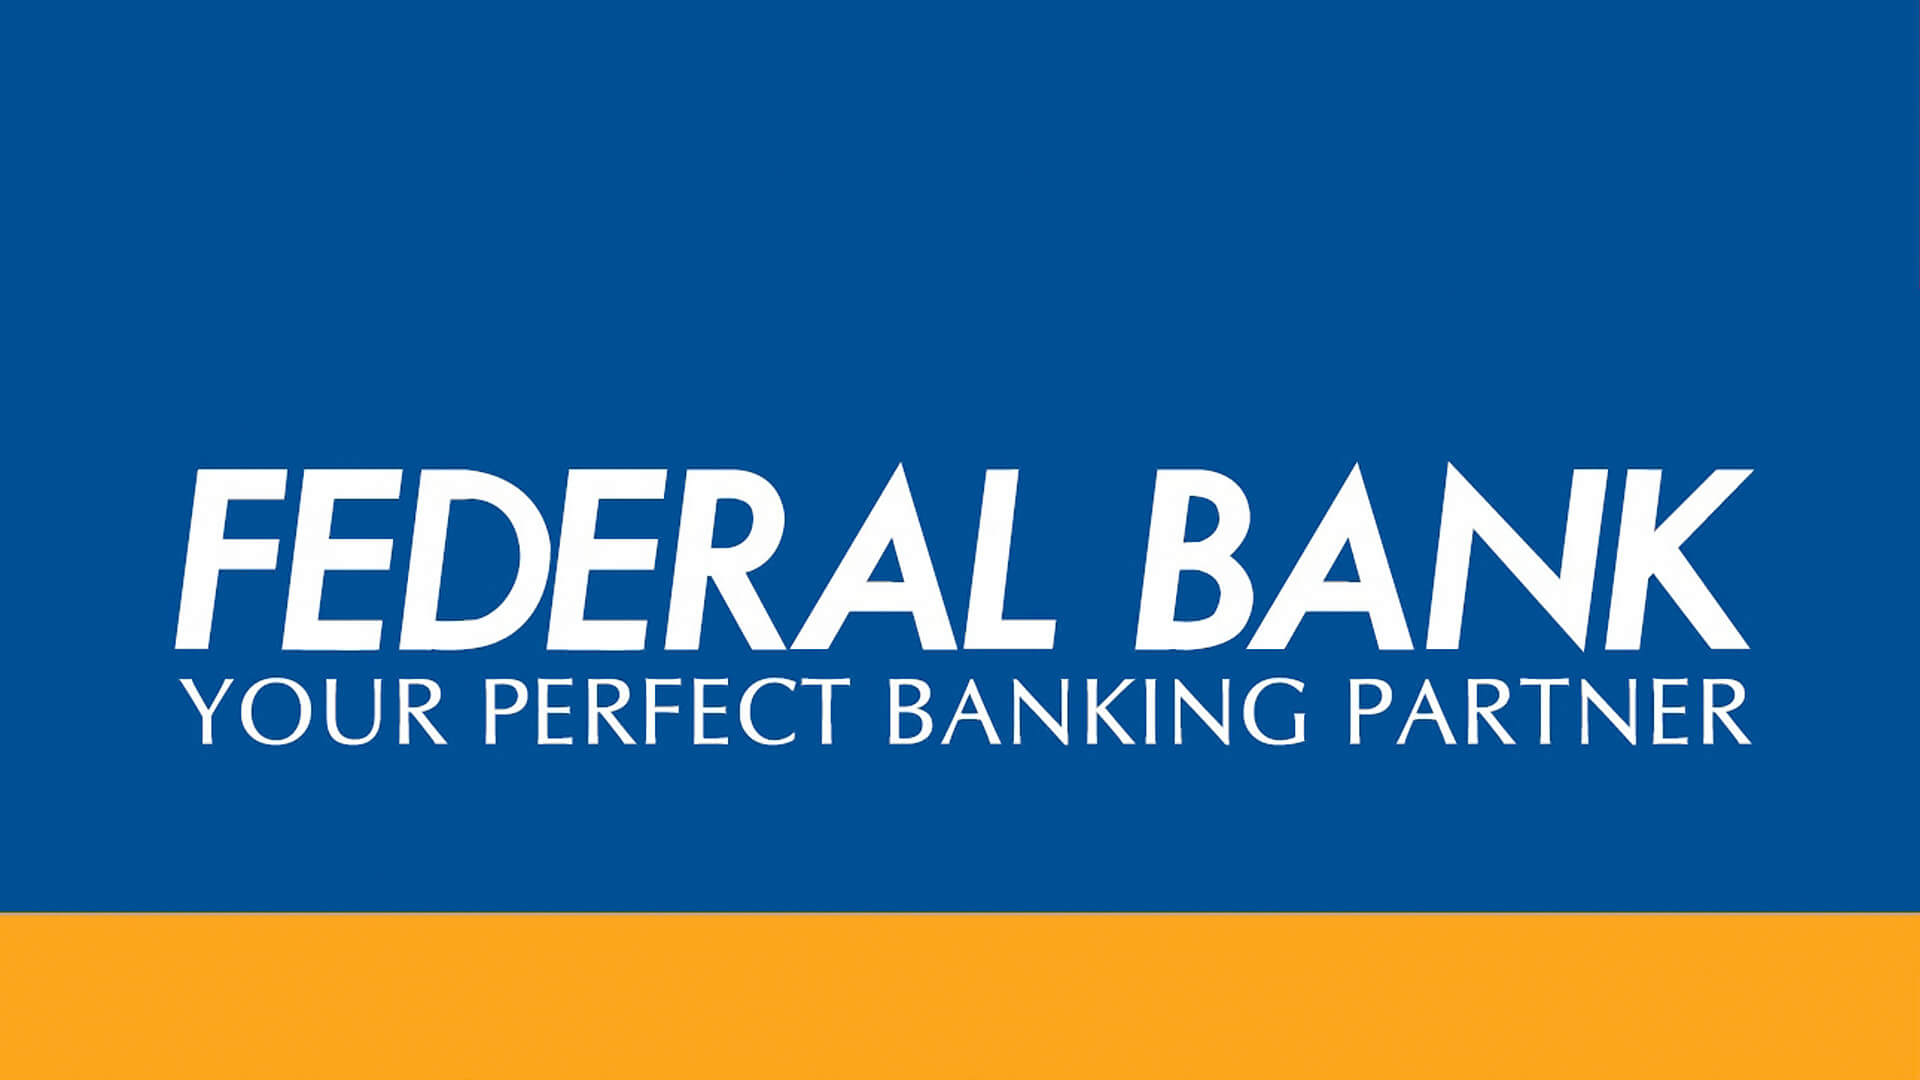 FEDERAL BANK Branches List